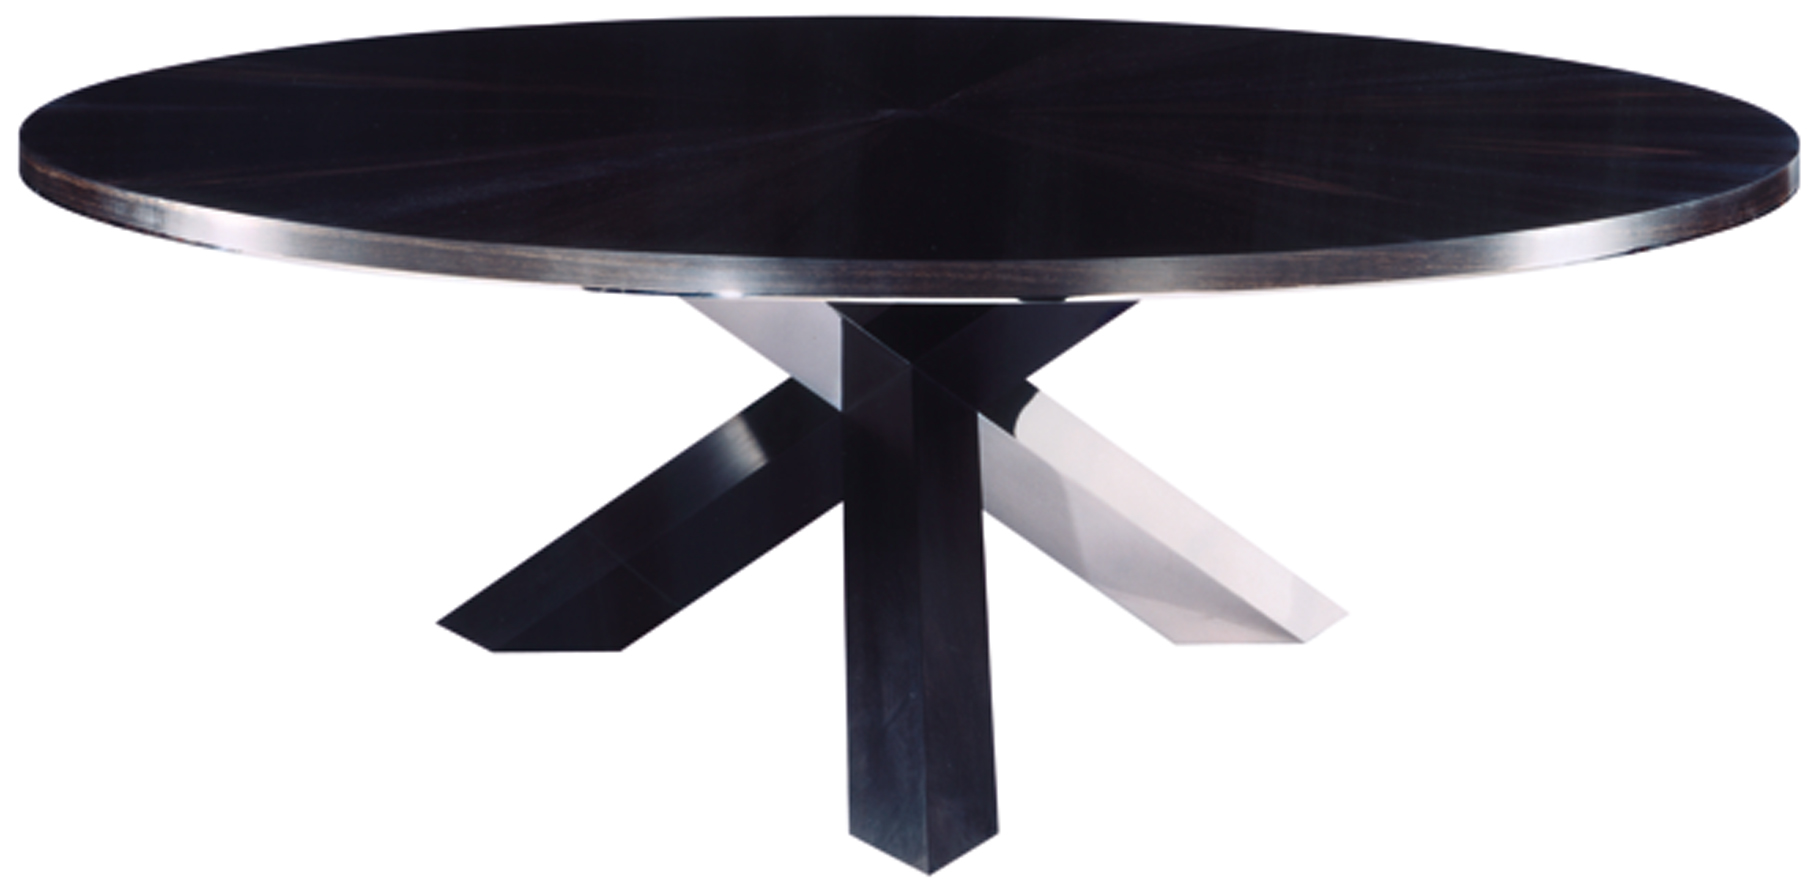 Stainless steel top round dining table buy dining table for Buy dining table